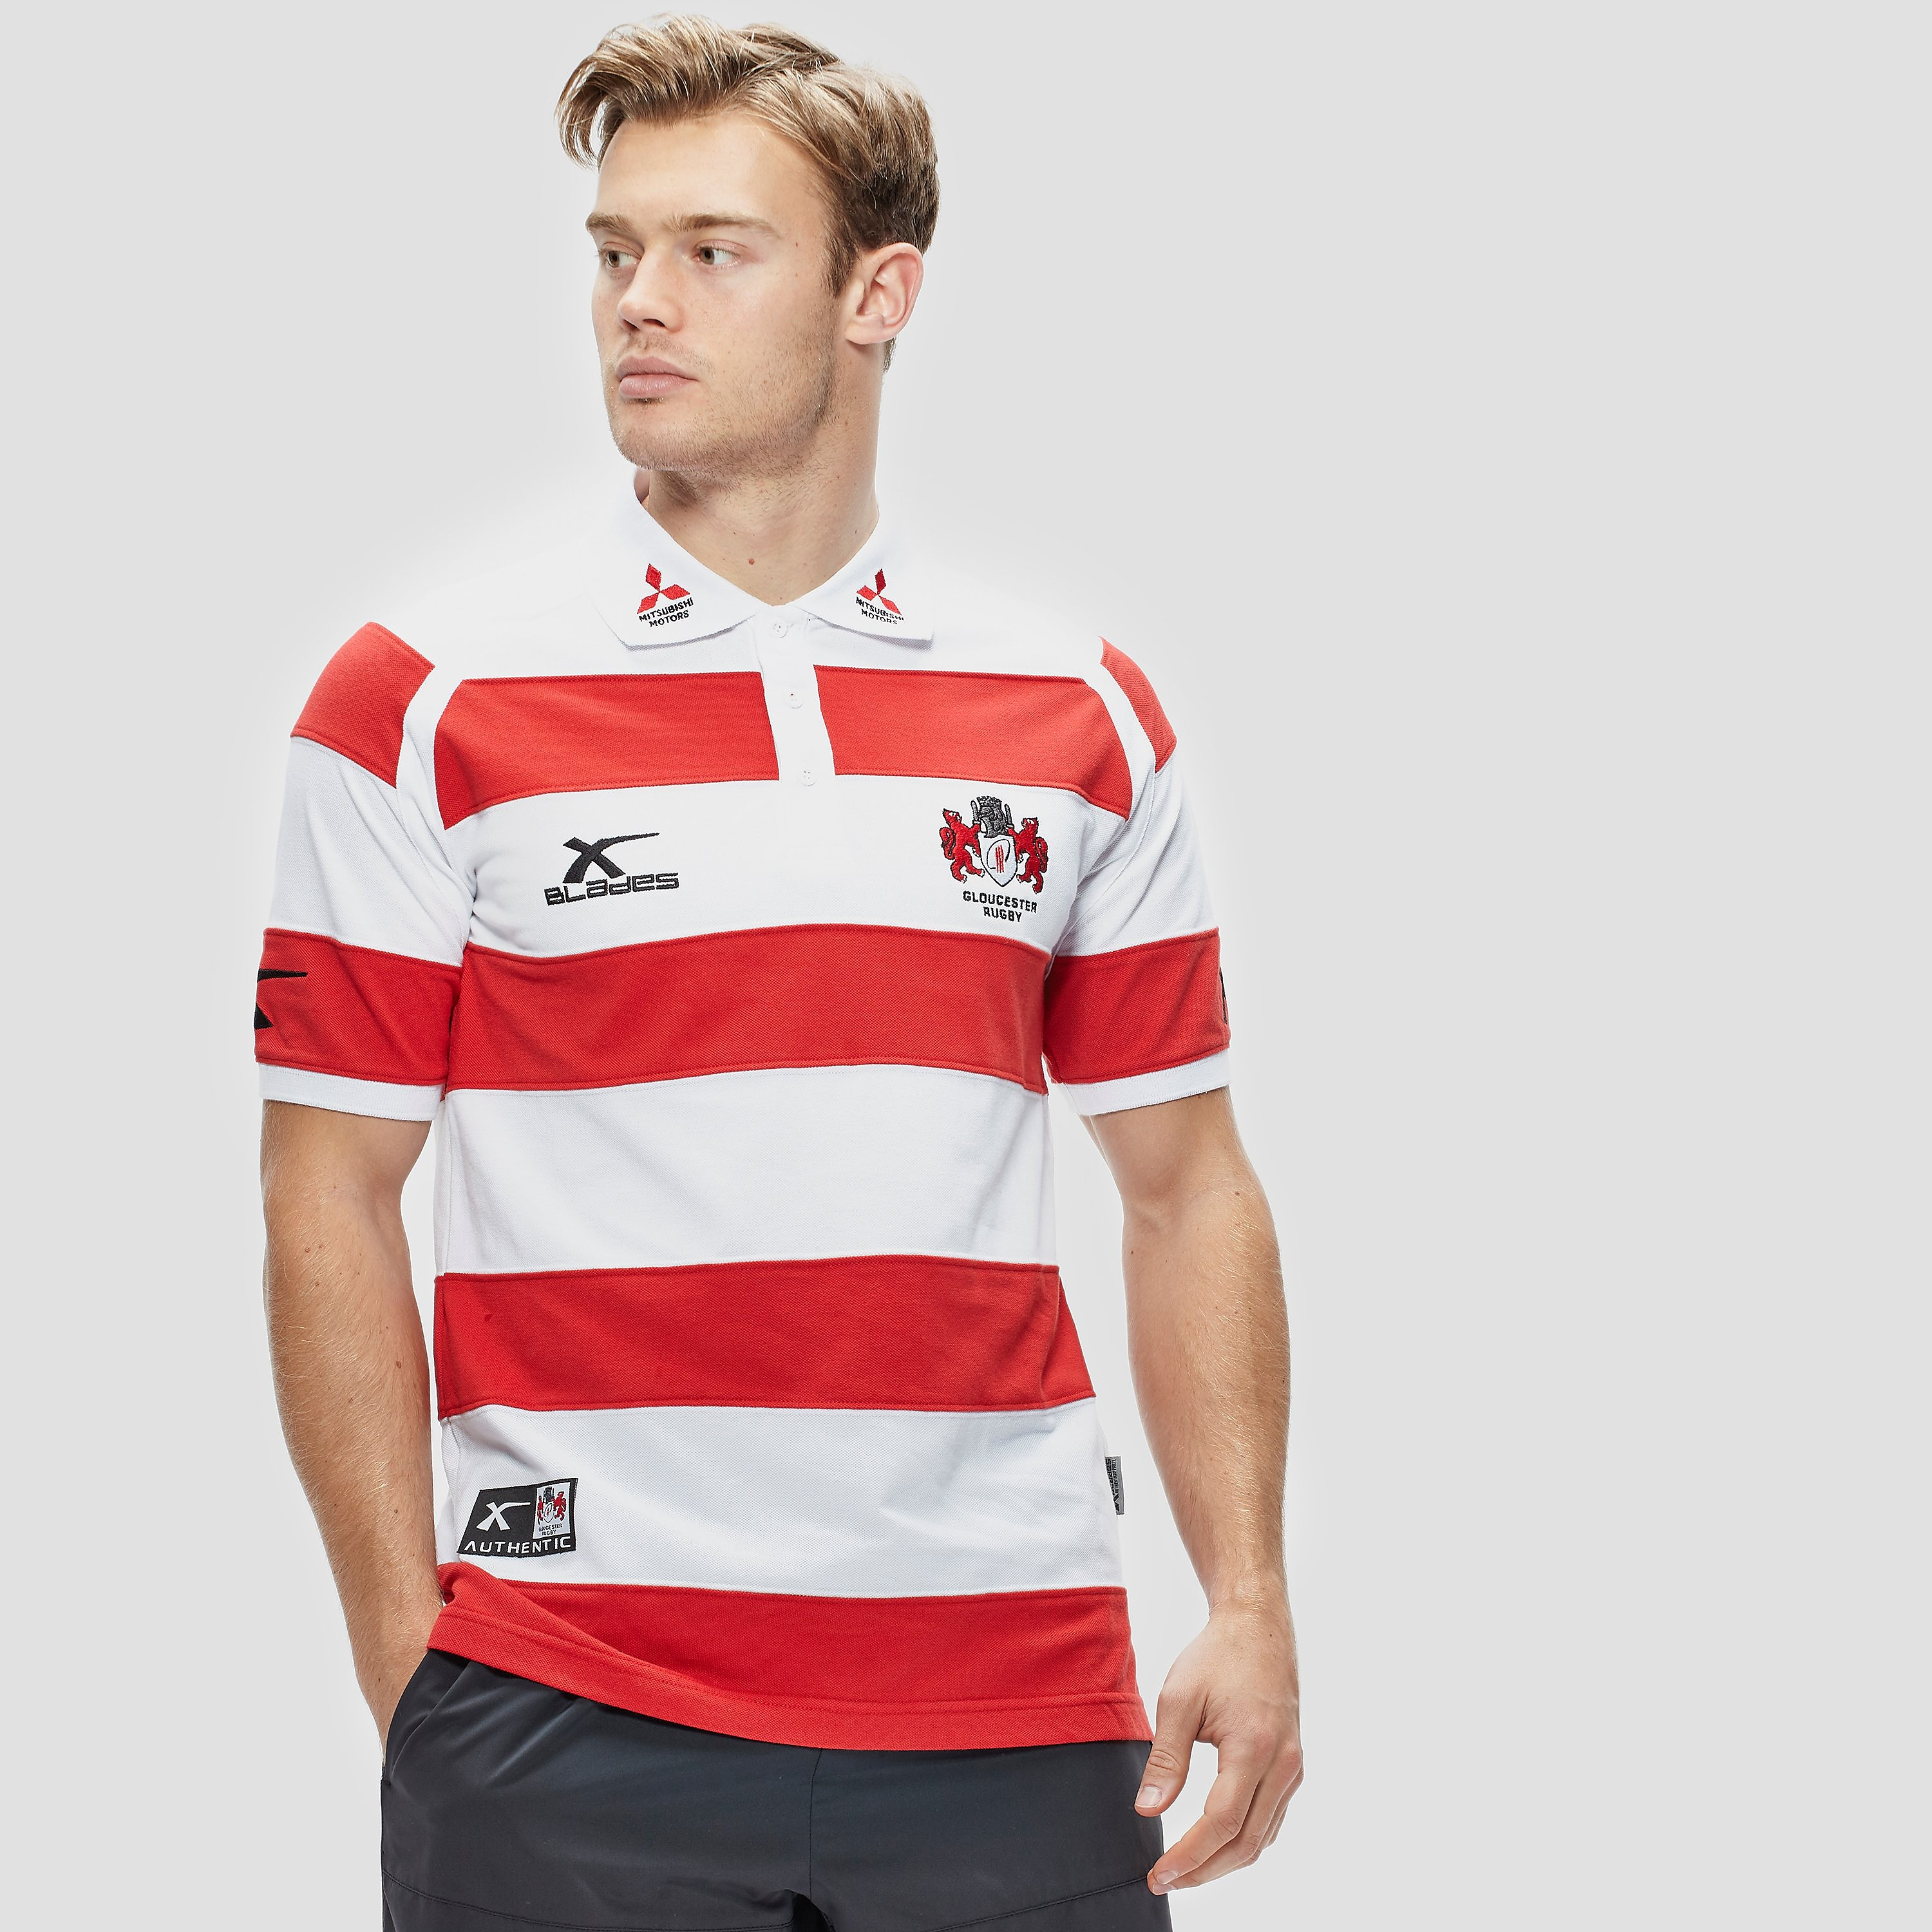 X blades Gloucester Rugby Polo